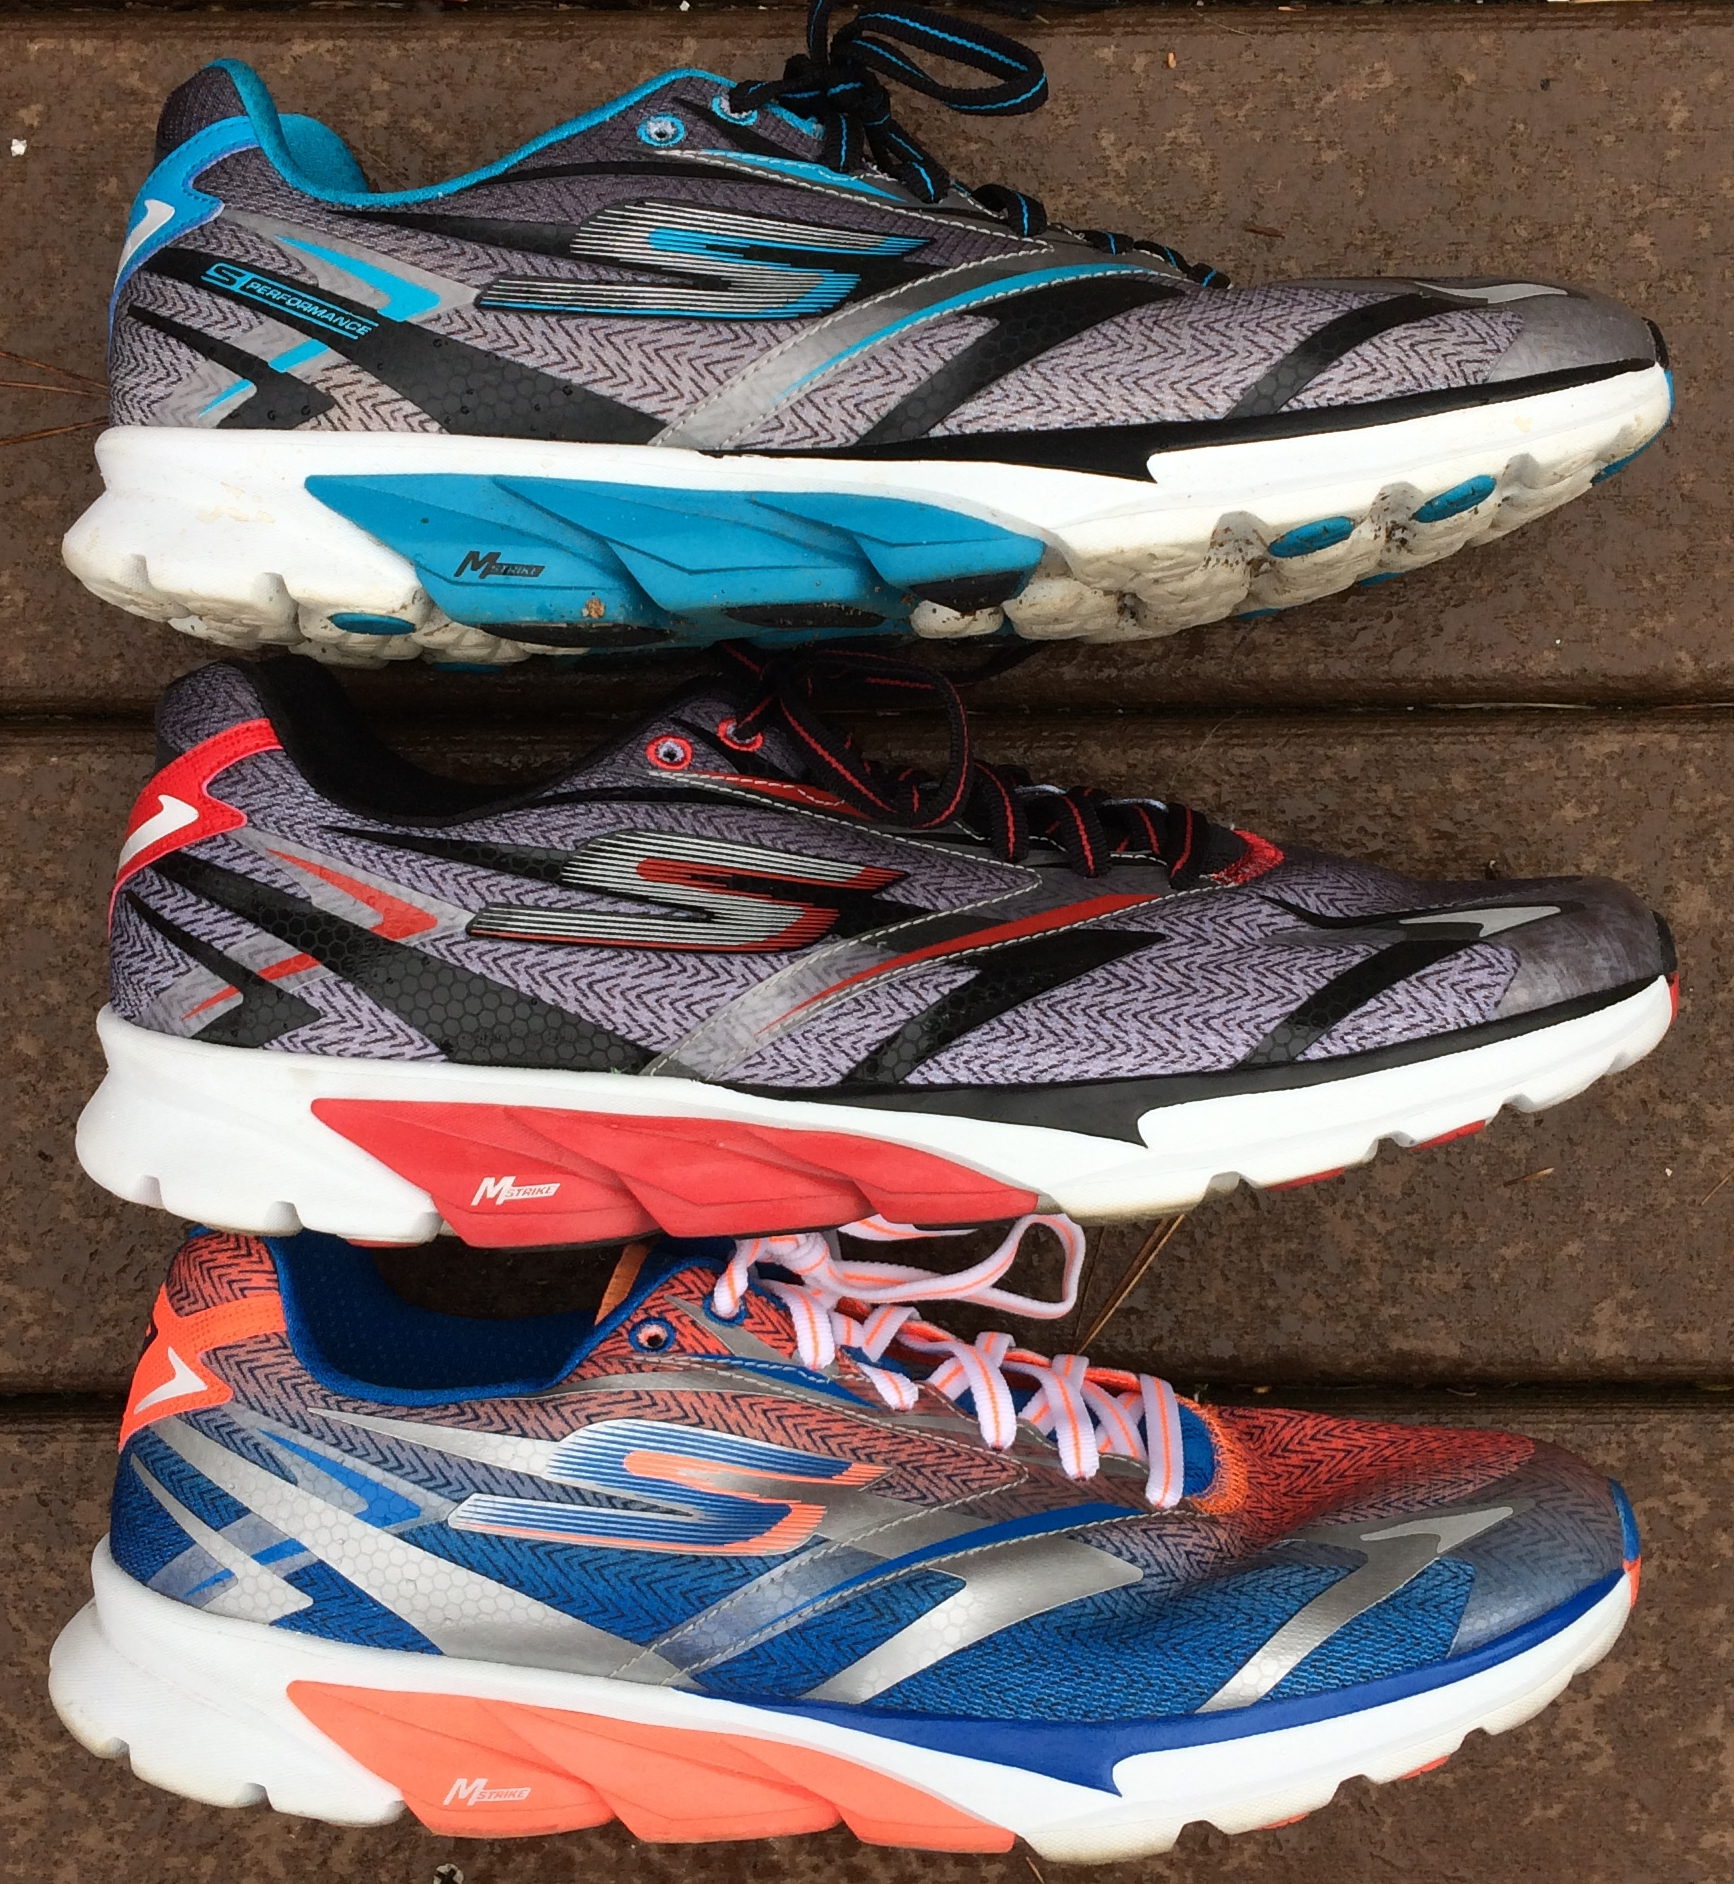 Skechers GoRun 4 Review: A Great Update